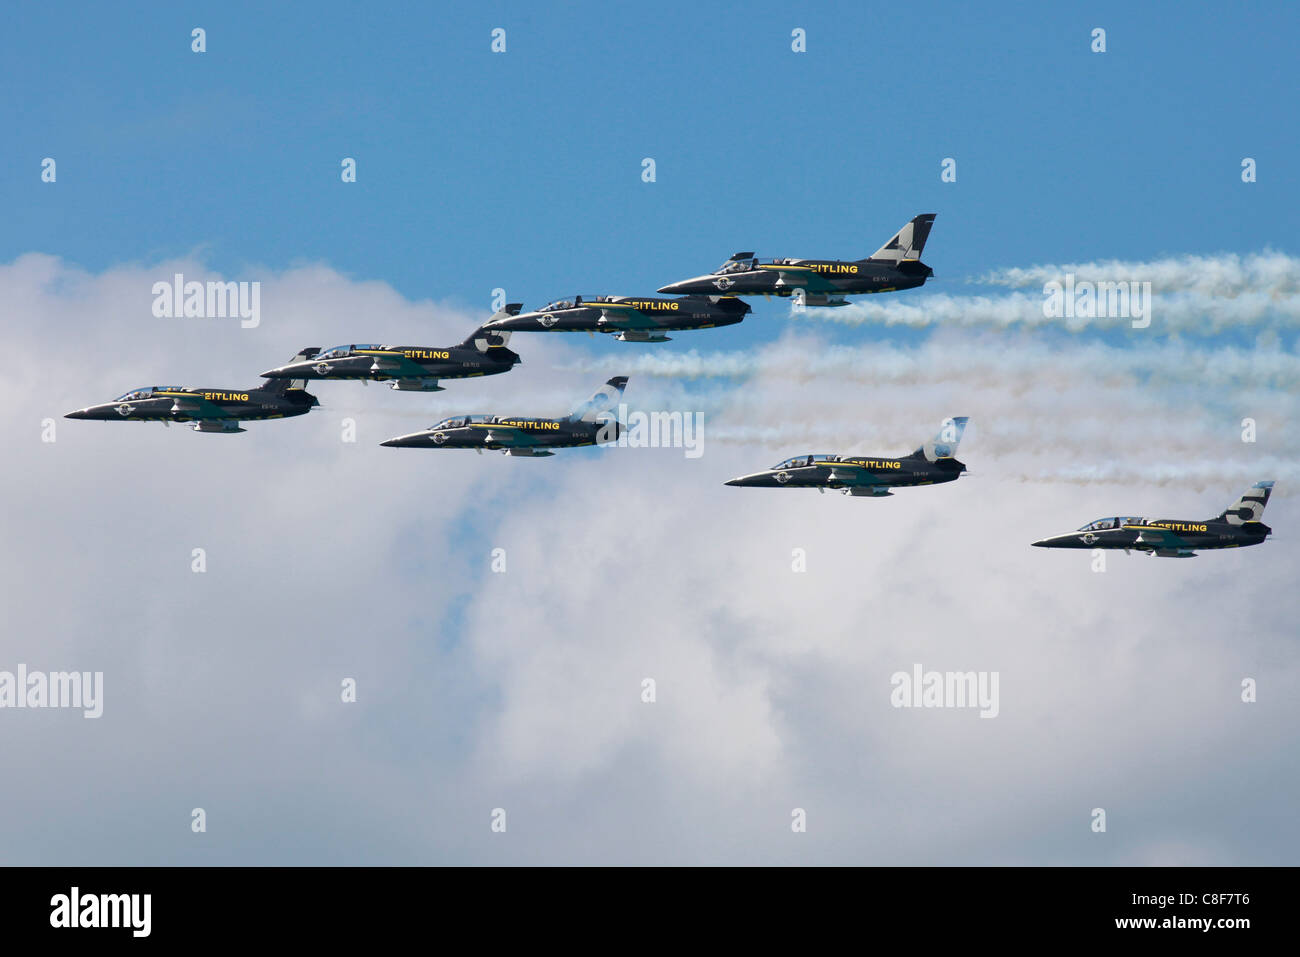 L-39C Albatros aircrafts from the Breitling Jet Team  flying in formation and leaving smoke trails in the sky during - Stock Image